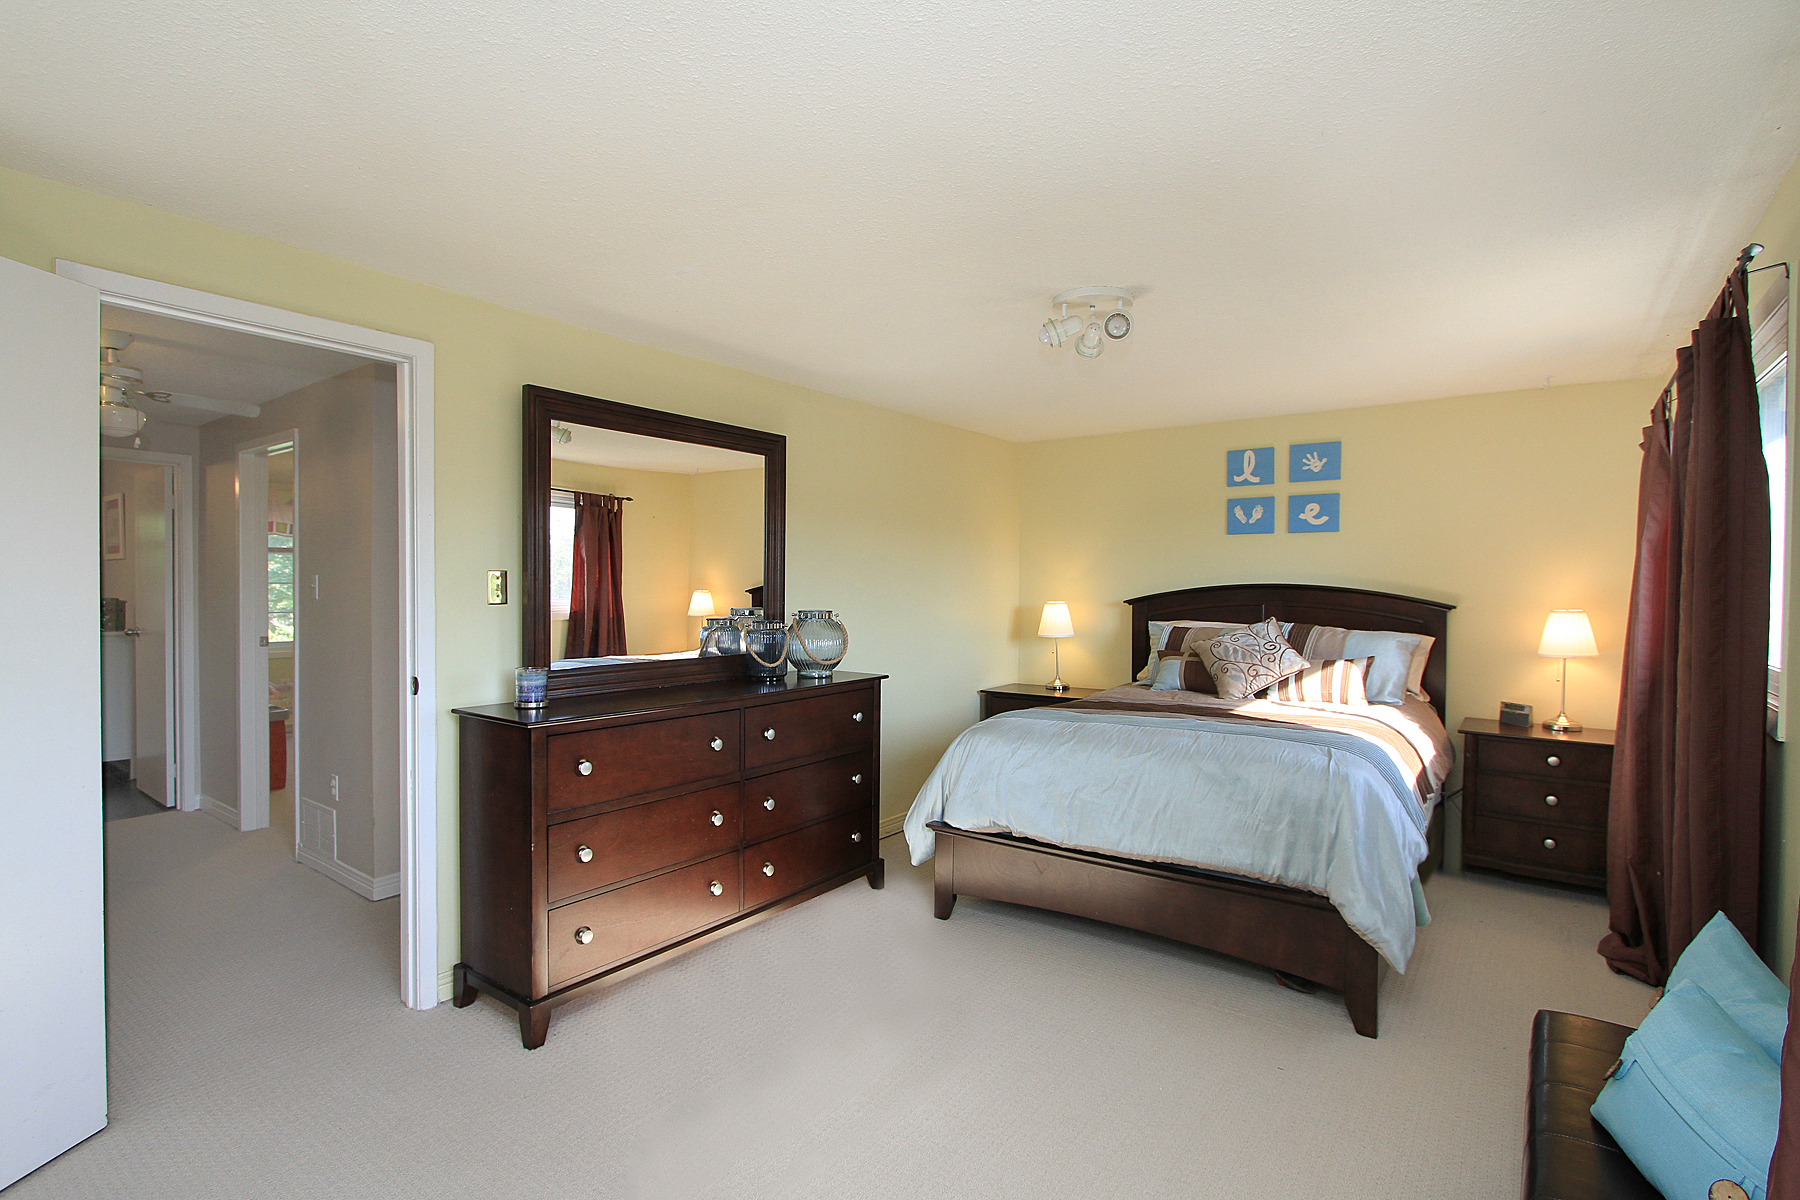 Photo of a master bedroom by Paula Kennedy of Purple Door Creative